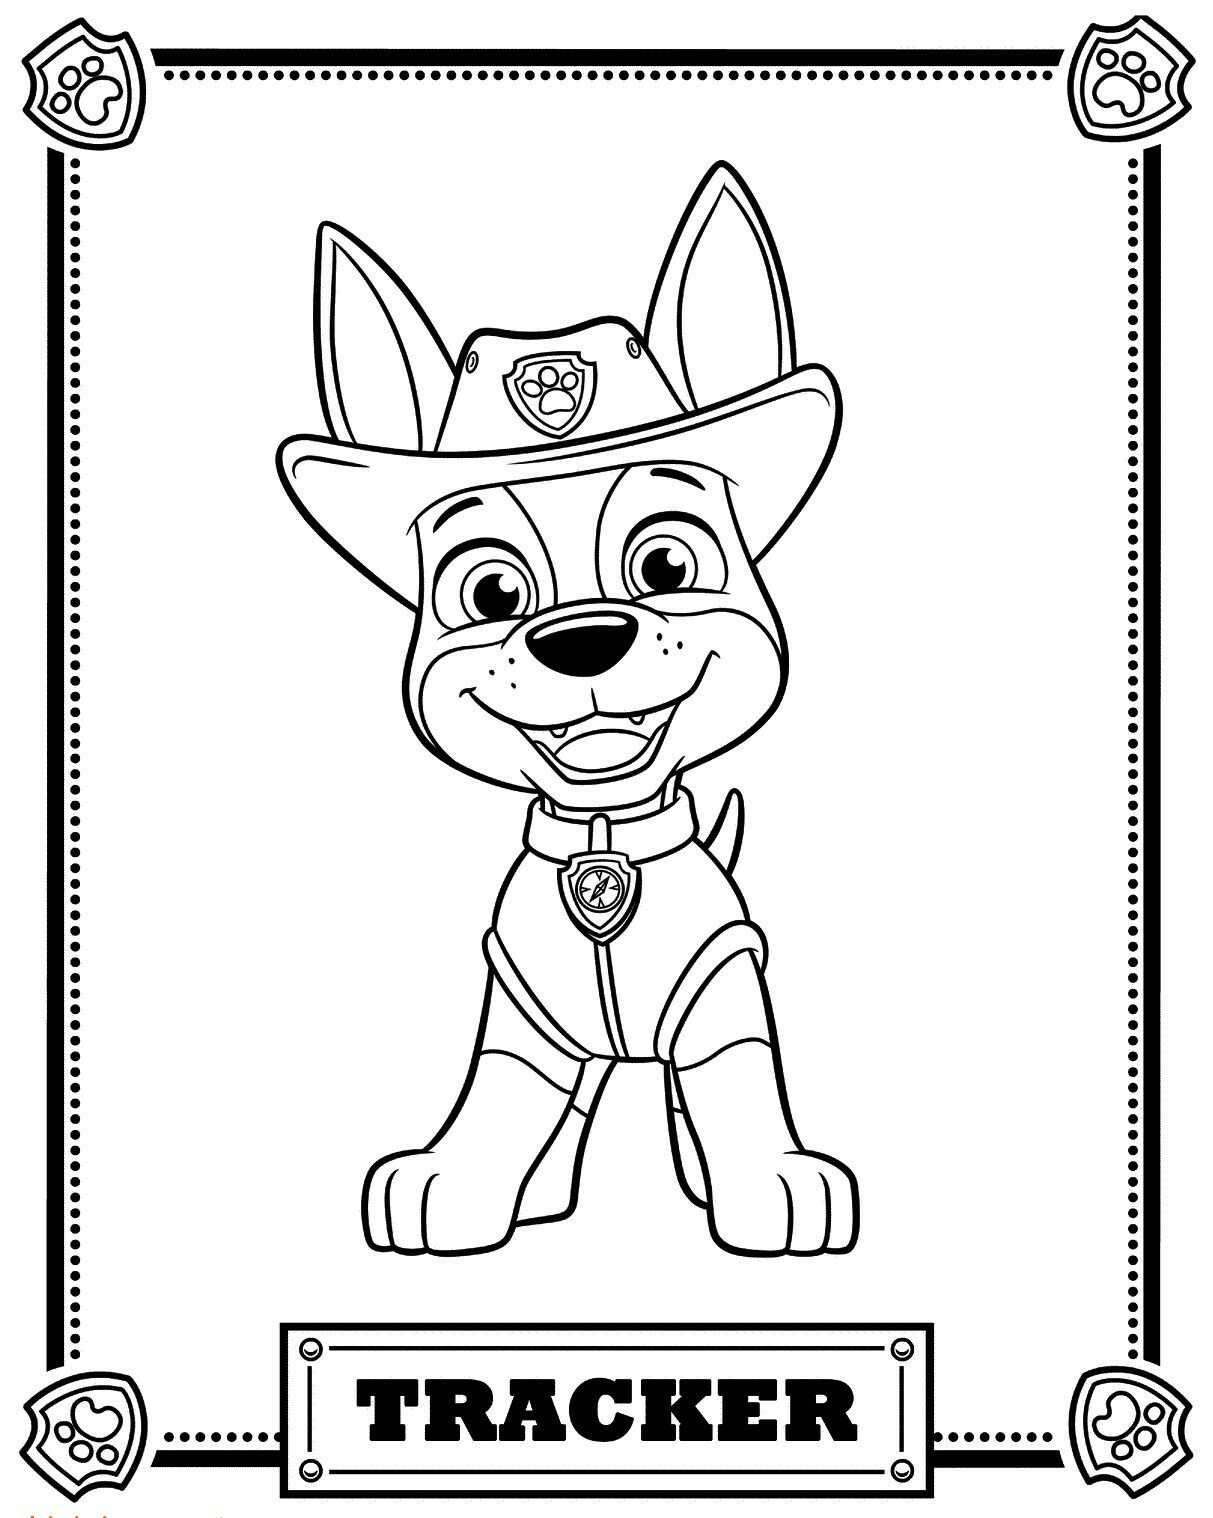 Tracker Paw Patrol Front With Images Paw Patrol Coloring Pages